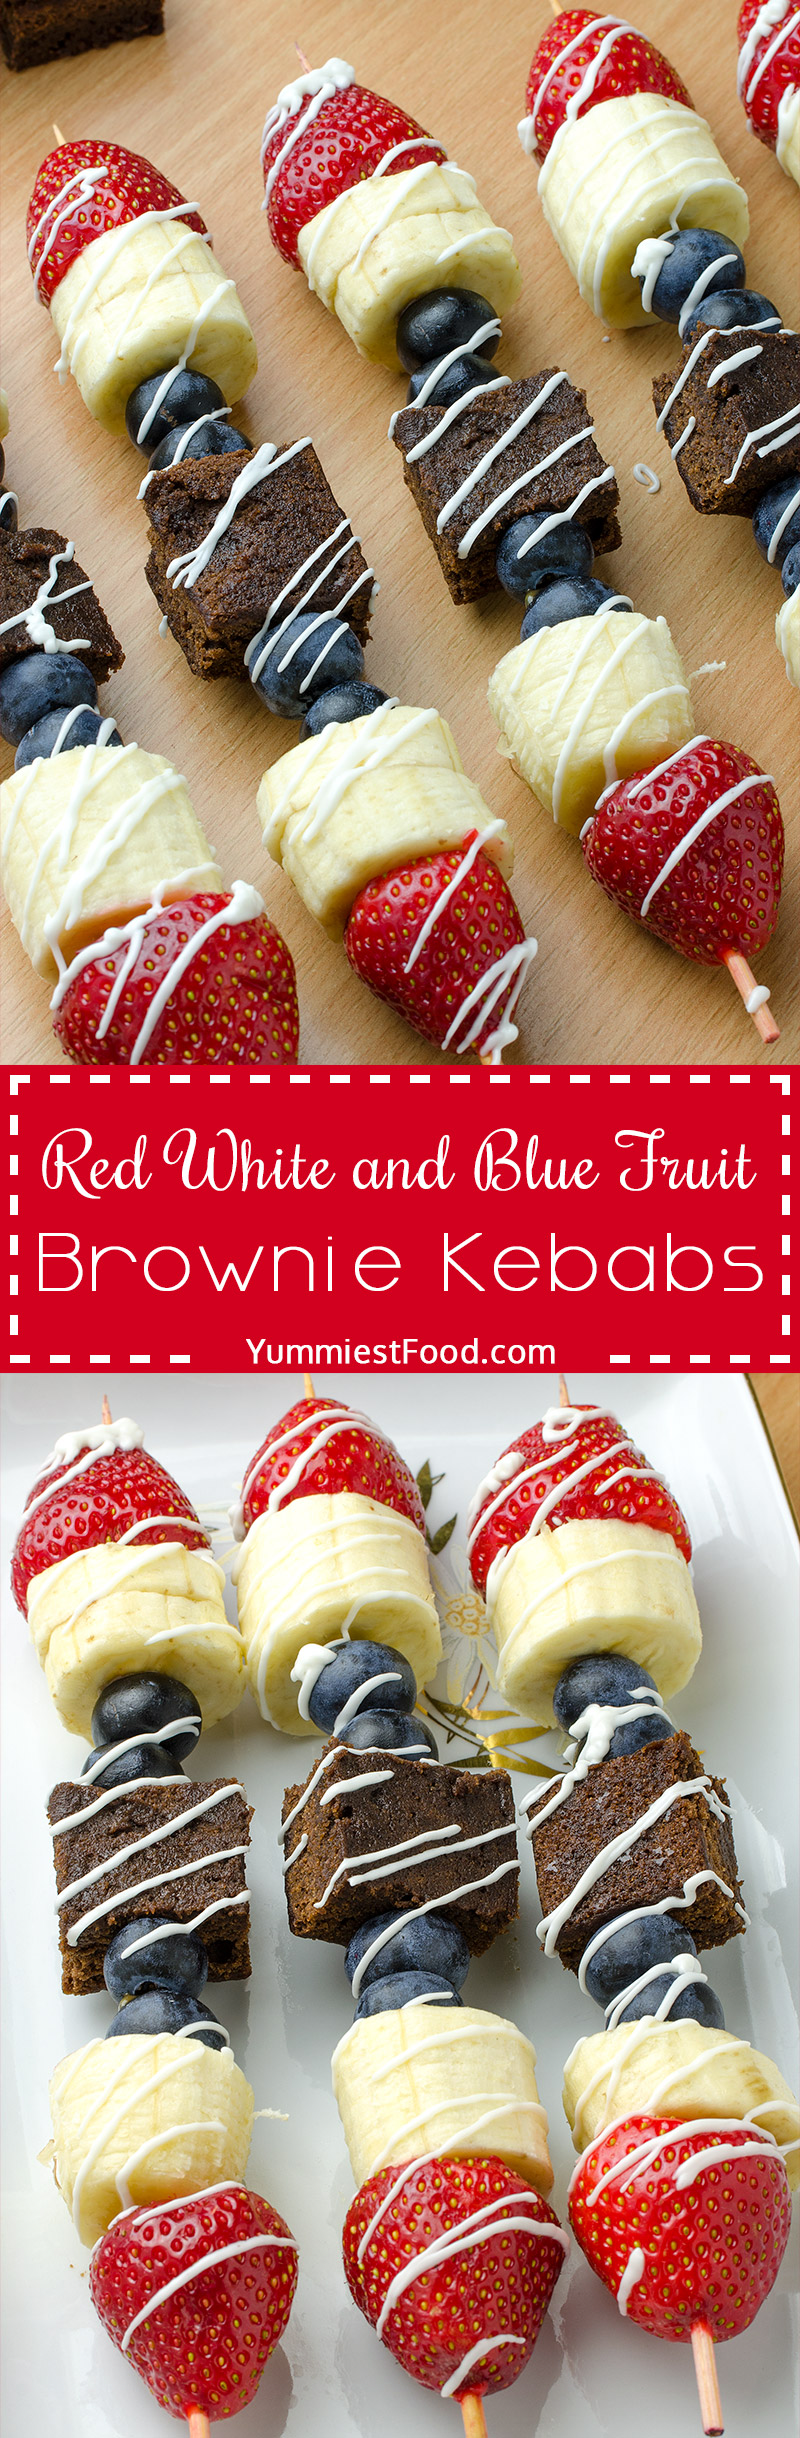 Healthy Summer Red, White and Blue Fruit Brownie Kebab - Very nice and super healthy dessert perfect for summer days